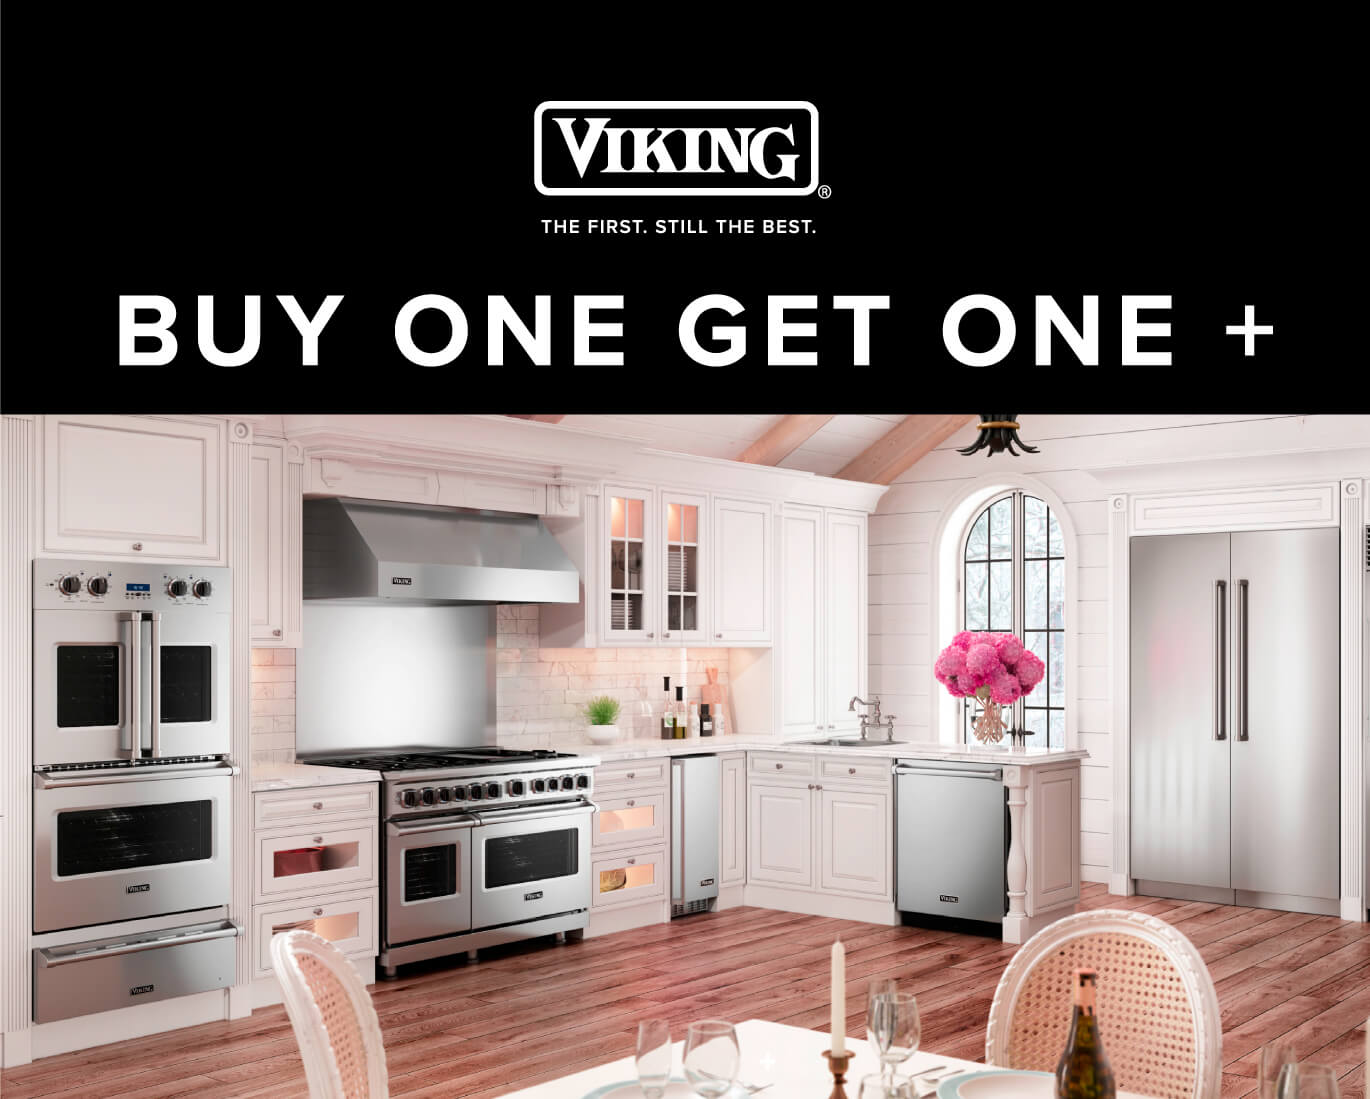 Viking Buy 1 Get One +